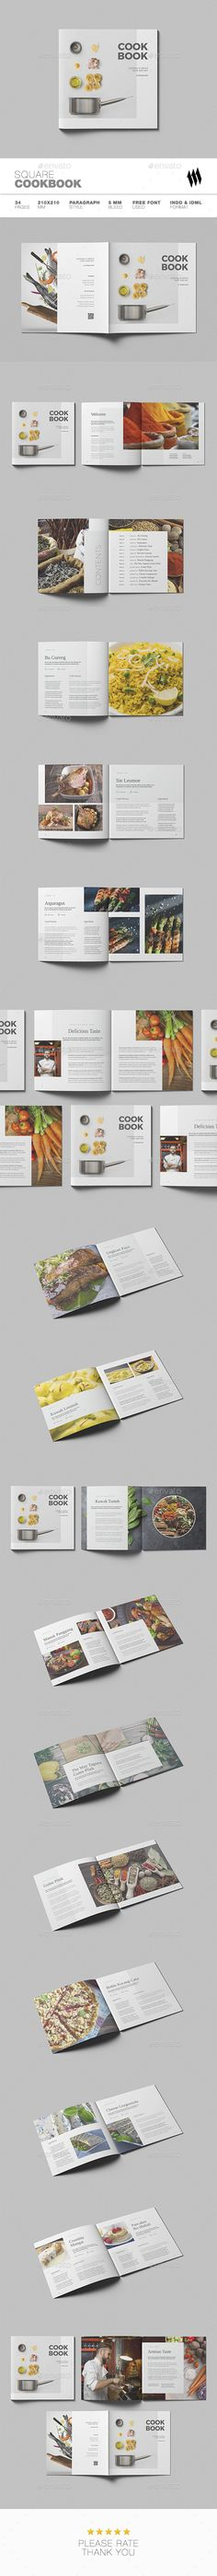 Square #Cookbook - #Brochures Print Templates Download here: https://graphicriver.net/item/square-cookbook/20375671?ref=alena994